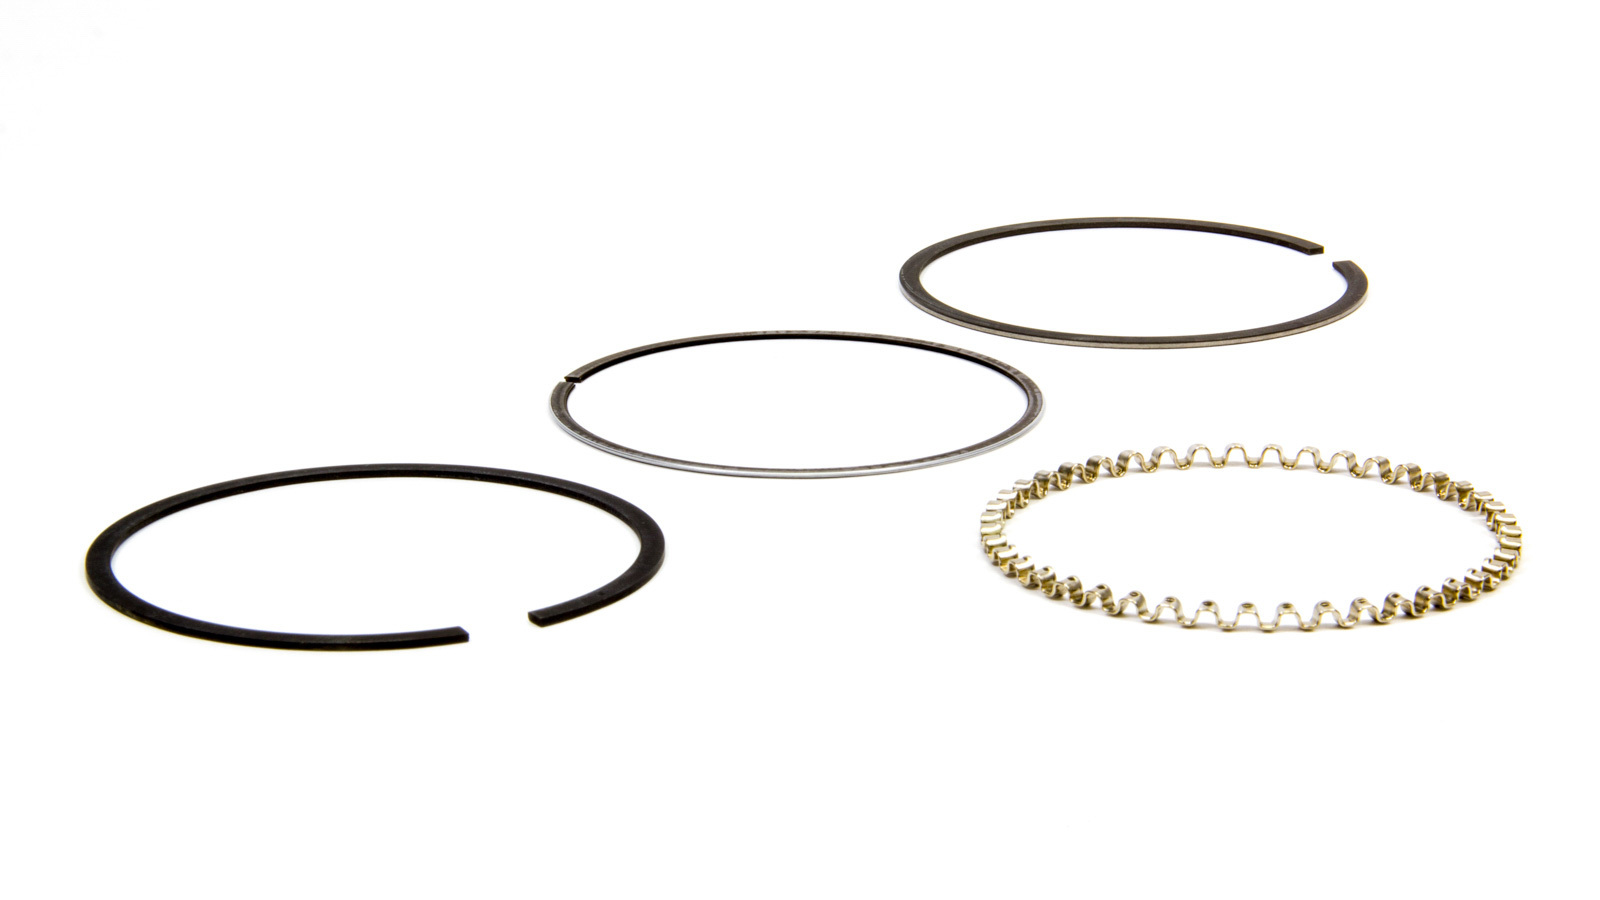 Wiseco 3810A Piston Rings, 3.810 in Bore, Drop in, 1/16 x 1/16 x 3/16 in Thick, Standard Tension, Plasma Moly, 1 Cylinder, Kit